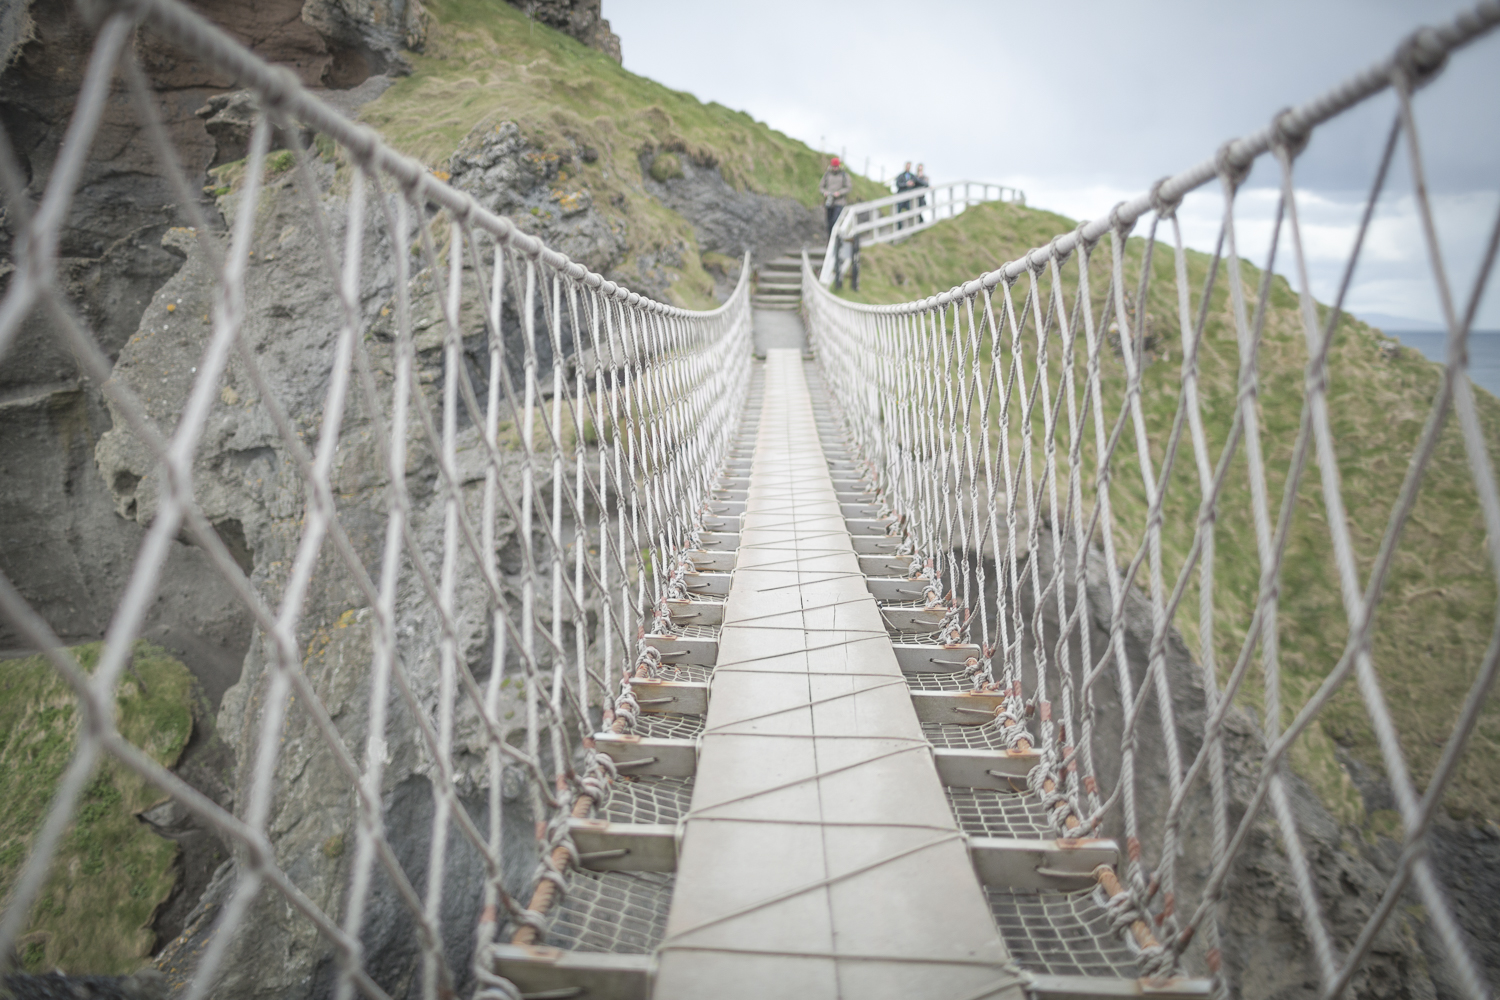 Irland Reiseblog: Nord Irland - Carrick-A-Rede Rope Bridge © PhotoTravelNomads.com